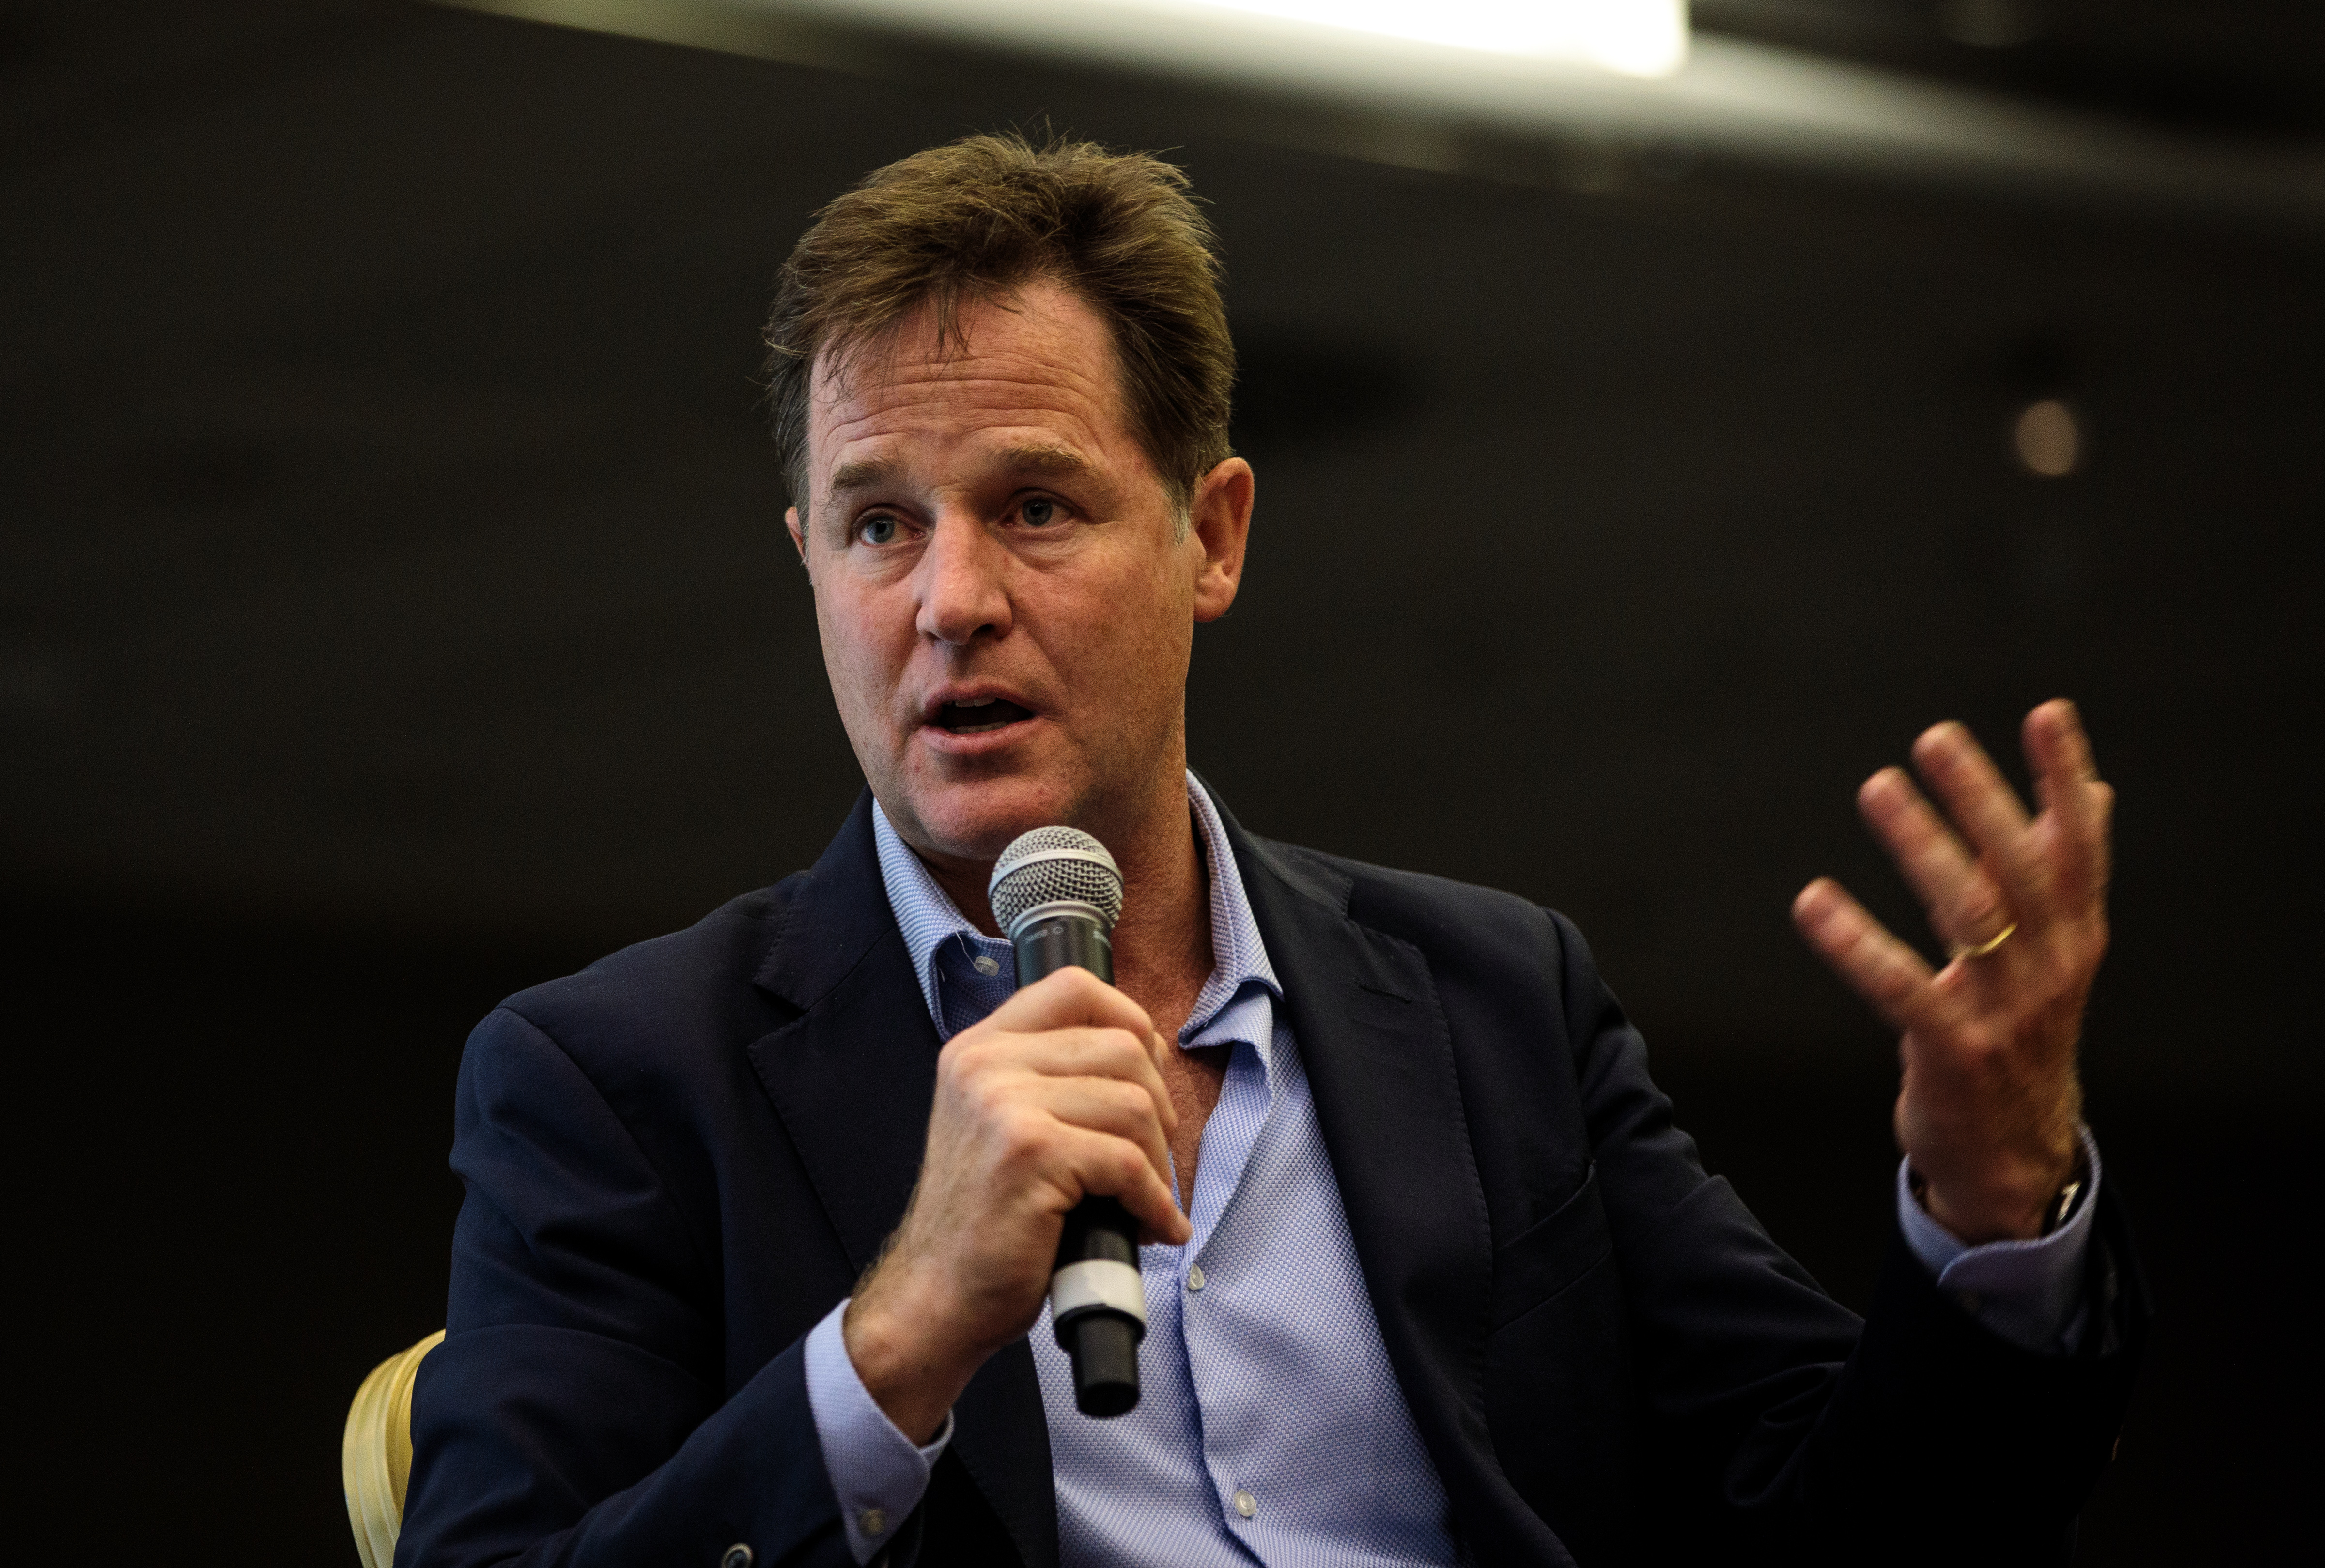 Now even Nick Clegg turns on Brussels